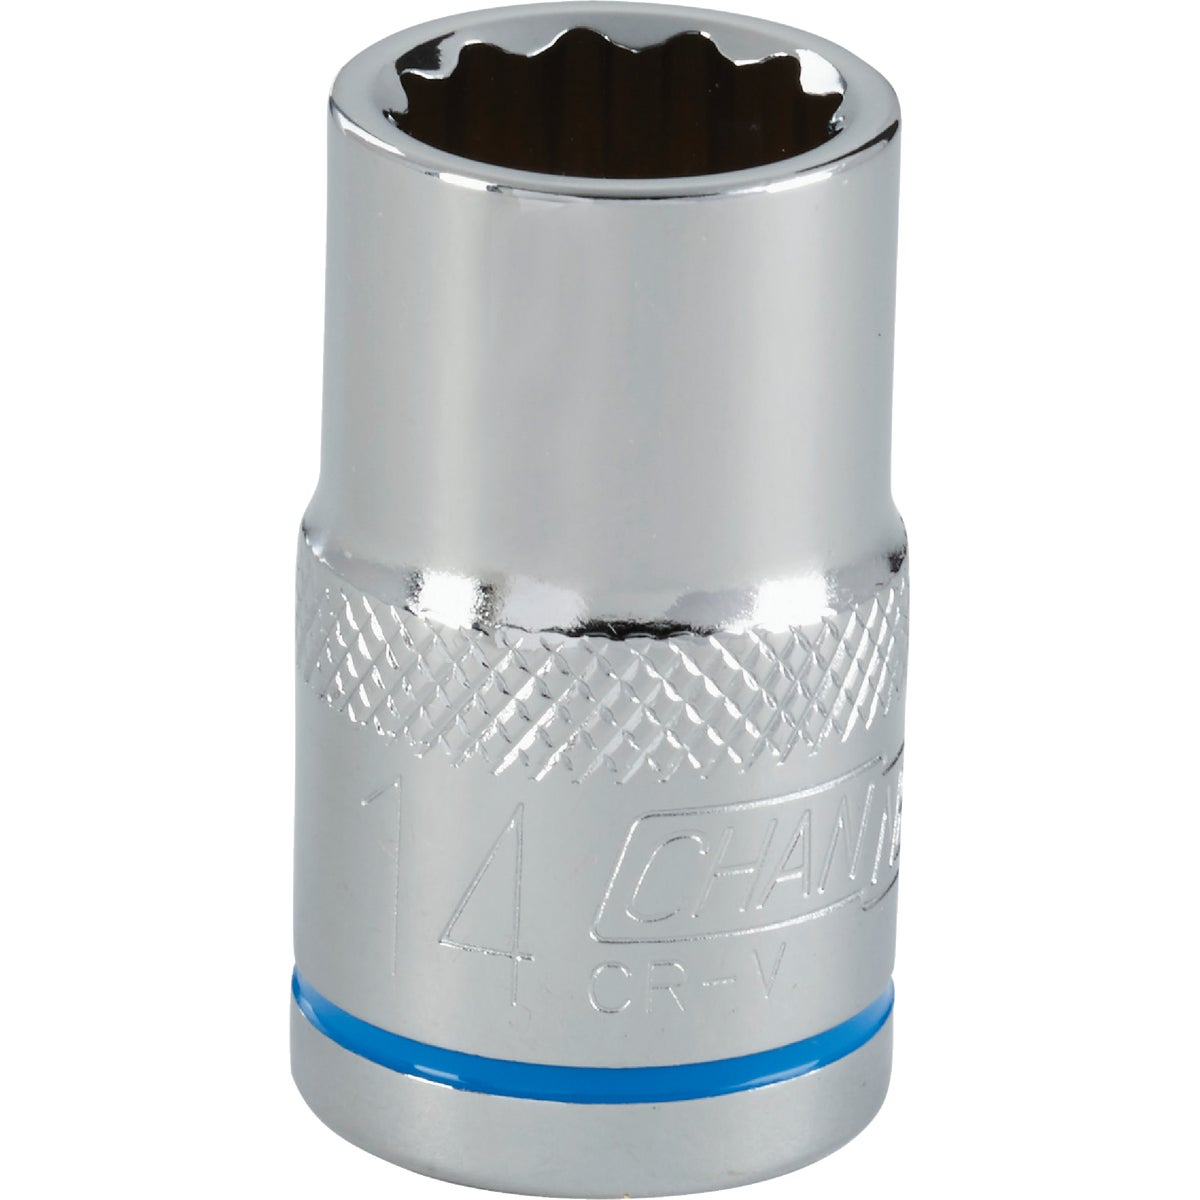 14MM 1/2 DRIVE SOCKET - 397644 by Do it Best